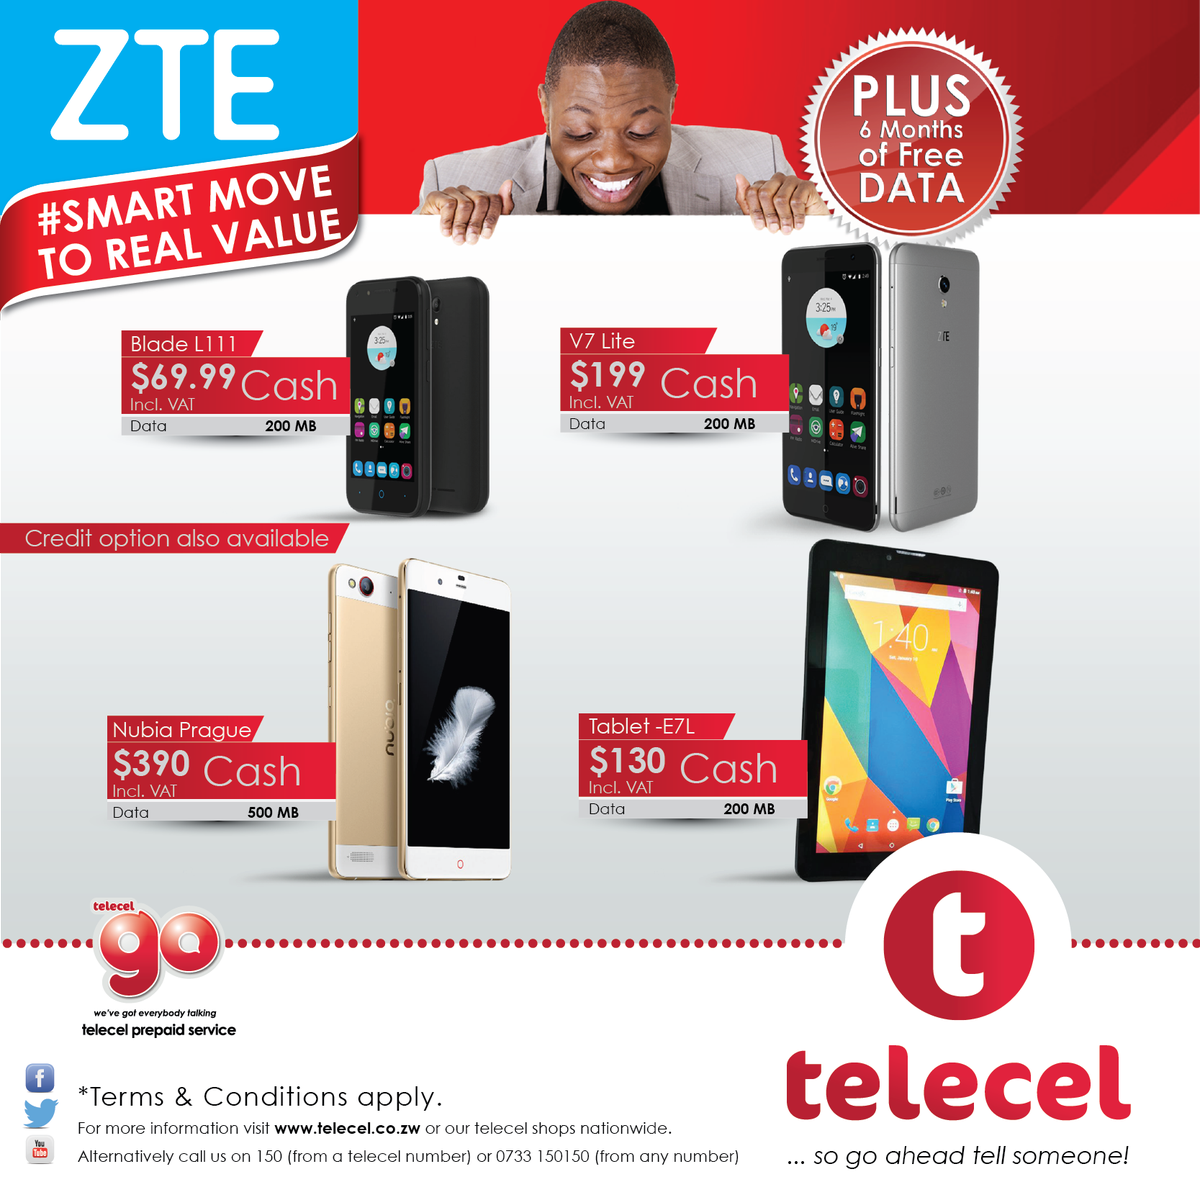 Telecel offers contract packages with bonus benefits